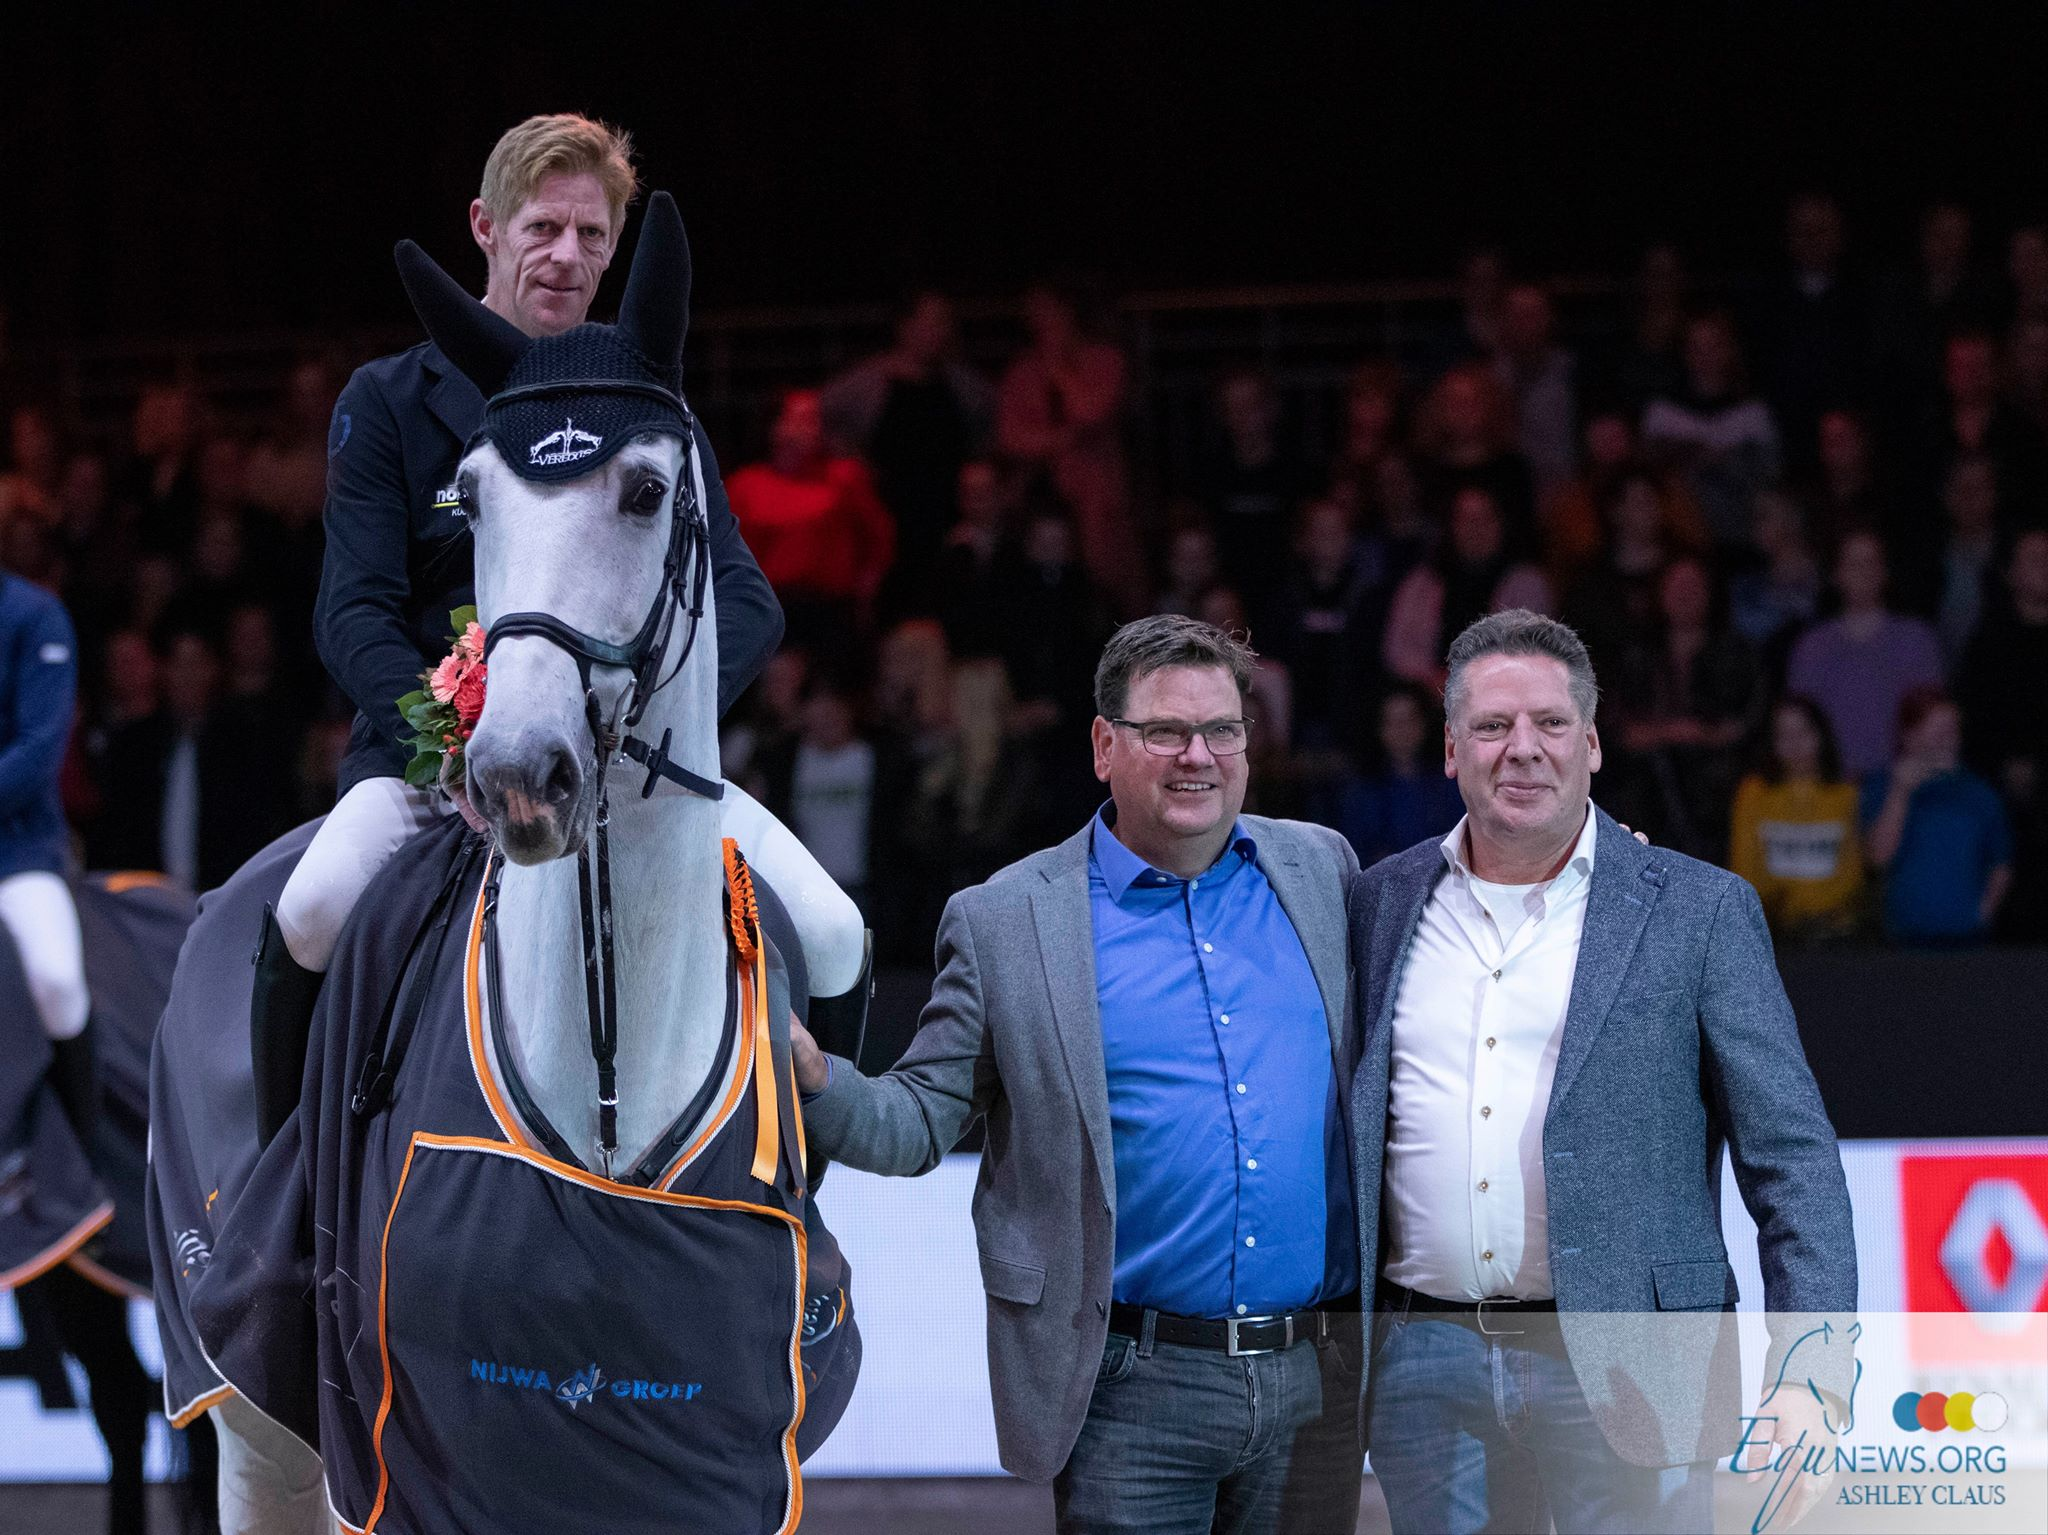 Check out today's biggest winners in Tryon, St Tropez, MET, Oslo, Herning, Zwolle and El Jadida